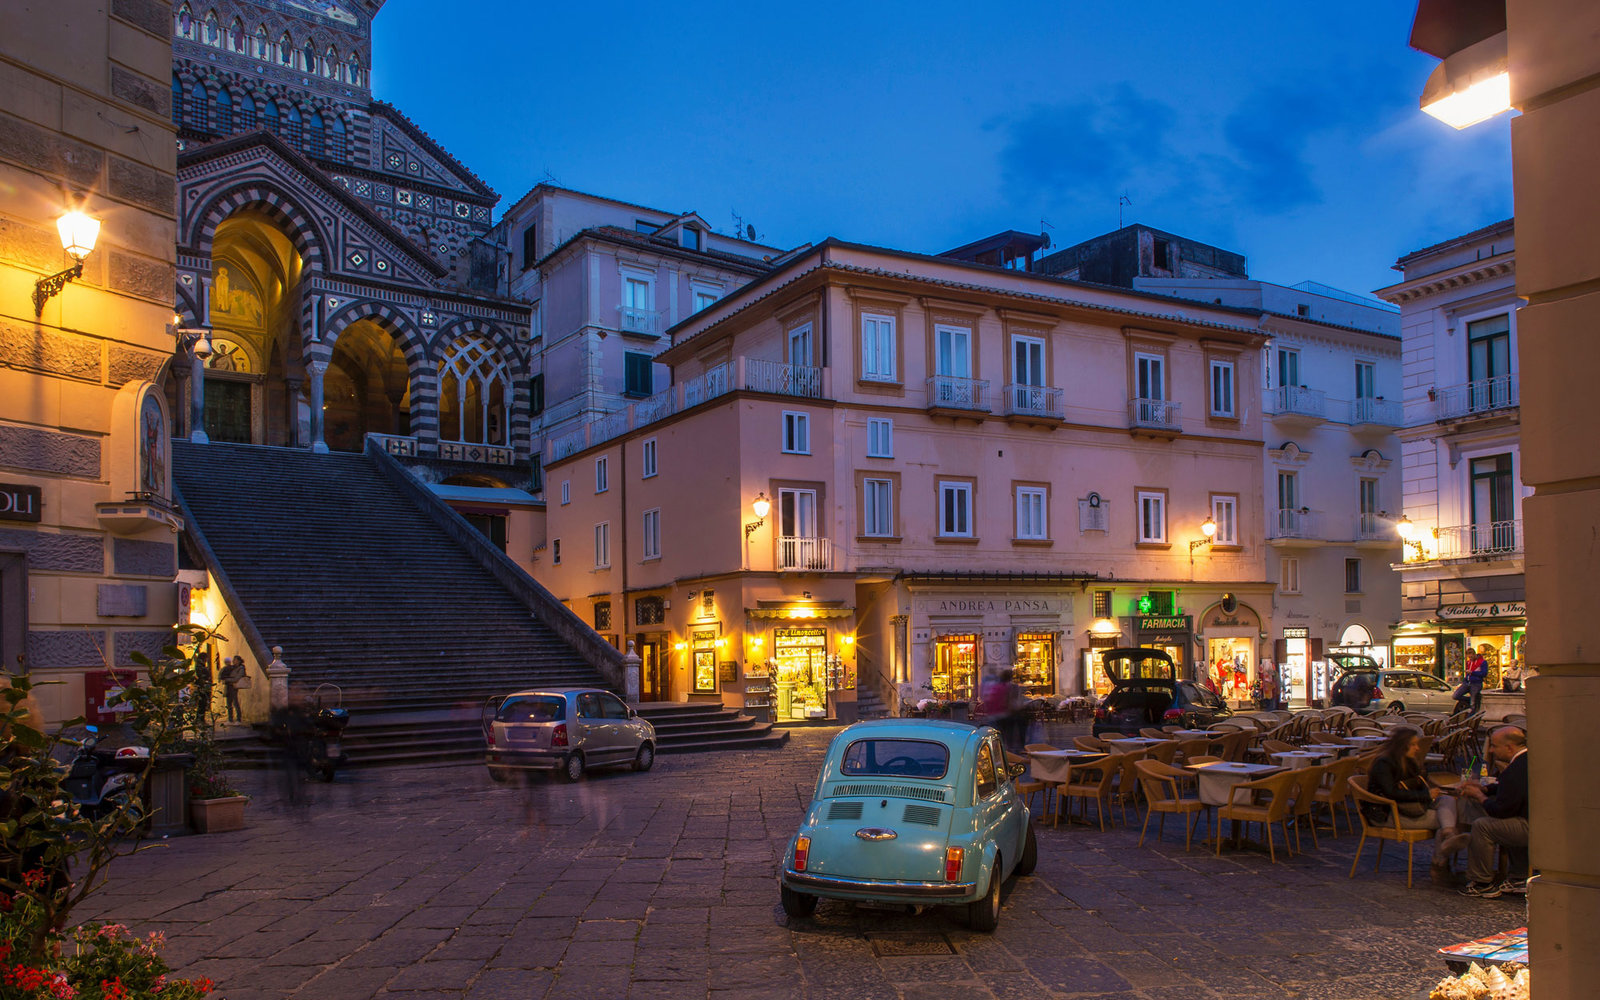 Square of Amalfi Cathedral